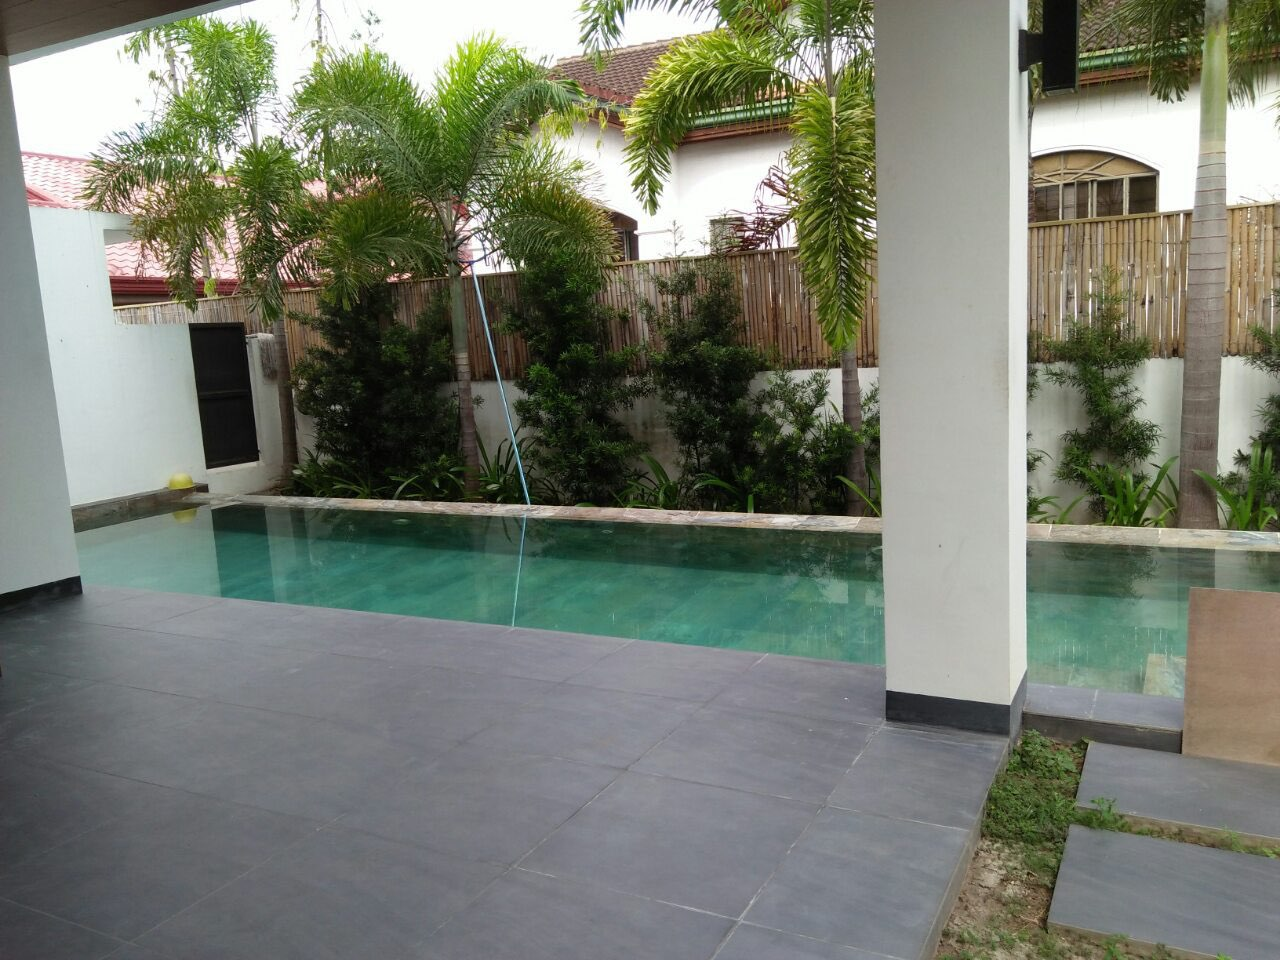 6BR House For Sale Rent, Buckingham St., Hillsborough Alabang Village, Muntinlupa City Pool